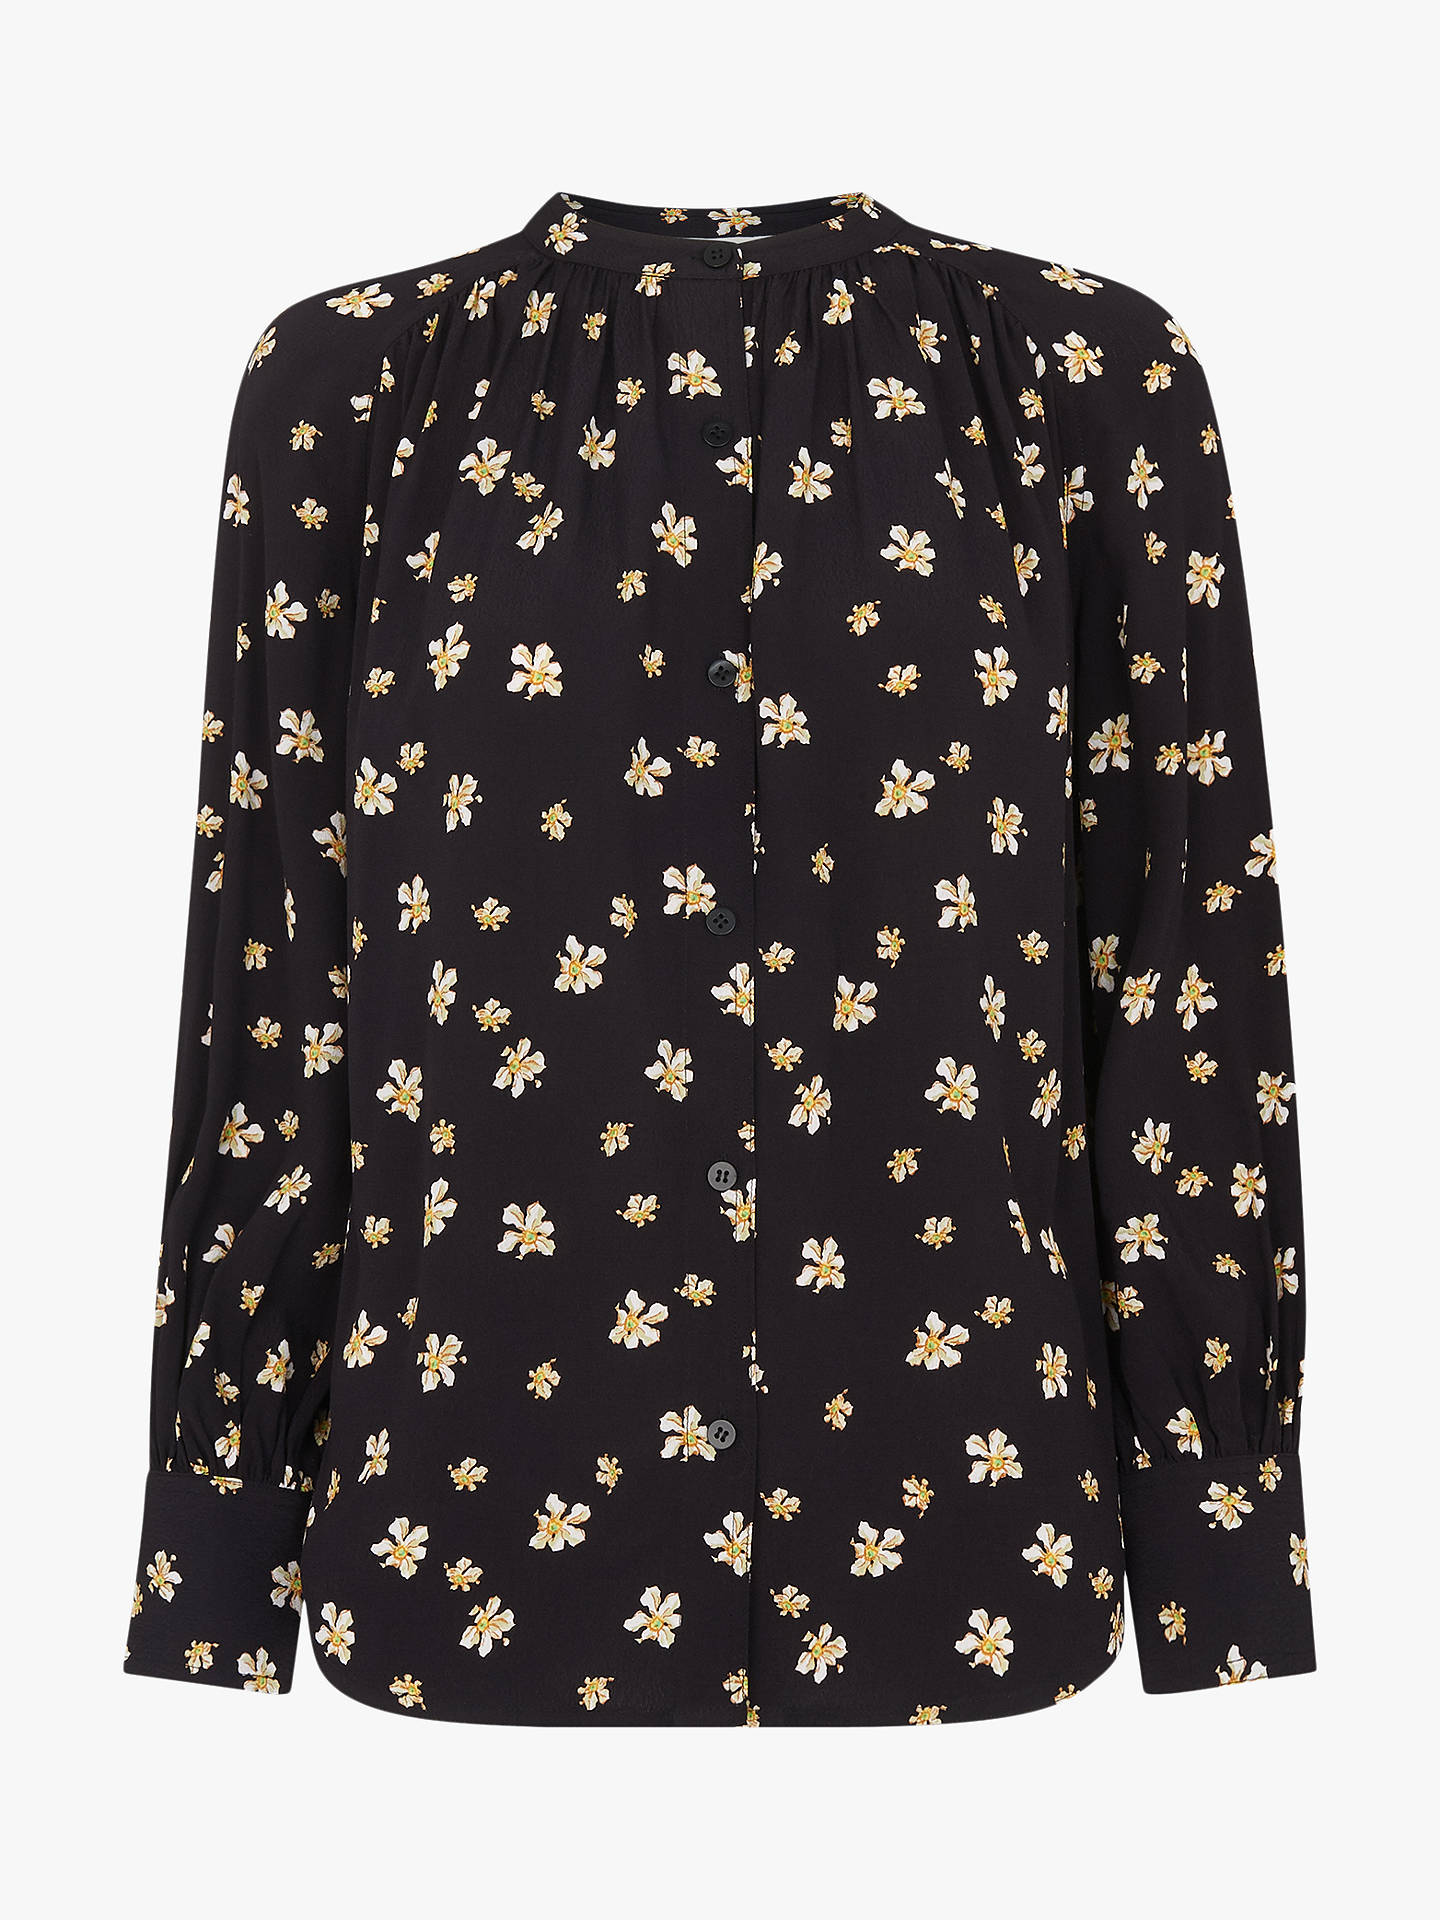 Buy Whistles Edelweiss Print Blouse, Black/Multi, 12 Online at johnlewis.com